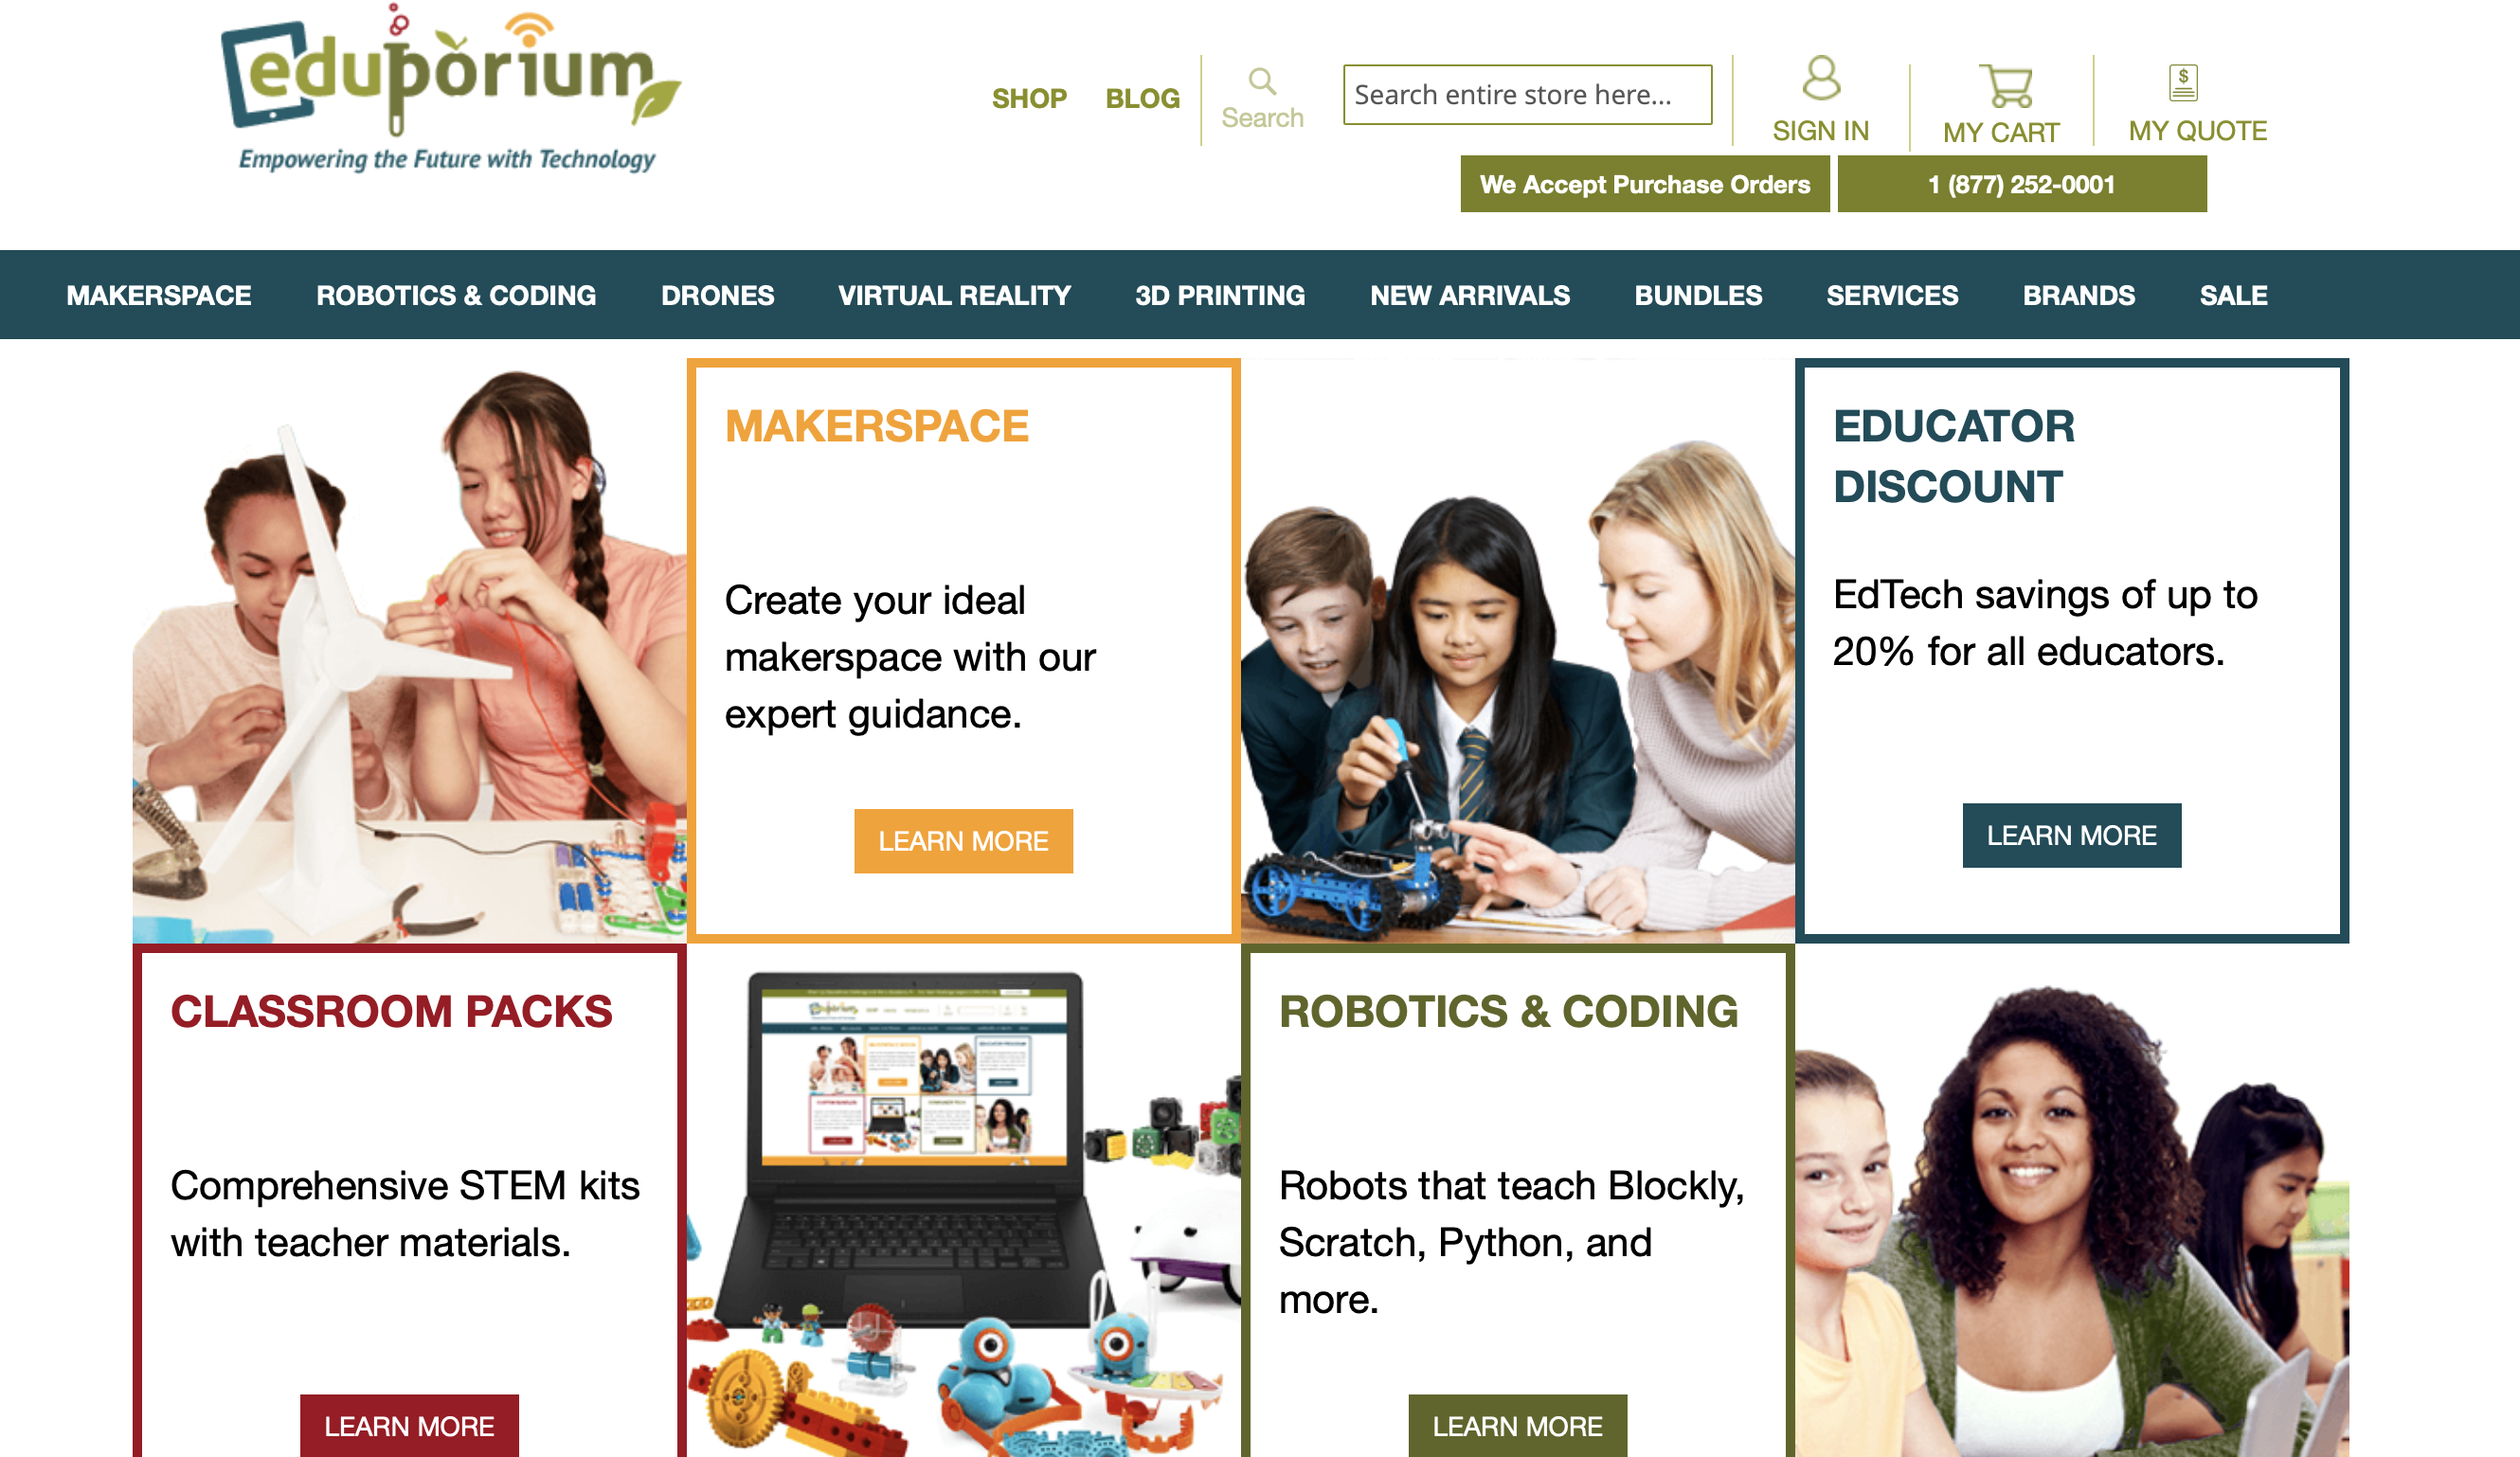 Eduporium - Empowering The Future With Technology